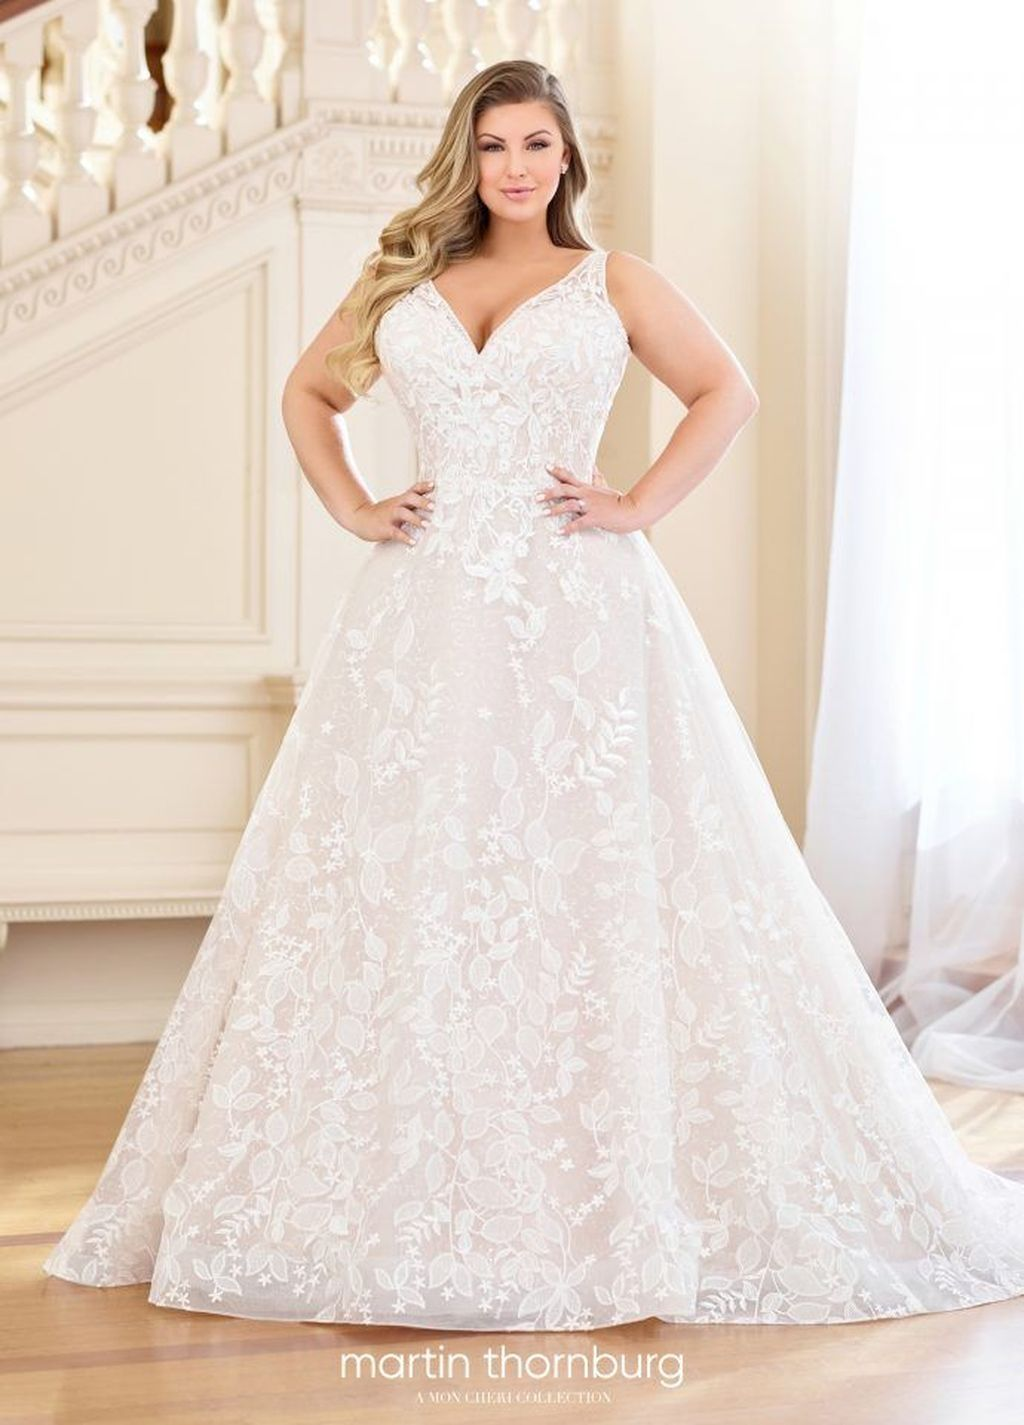 35 Impressive Wedding Dresses Ideas That Are Perfect For